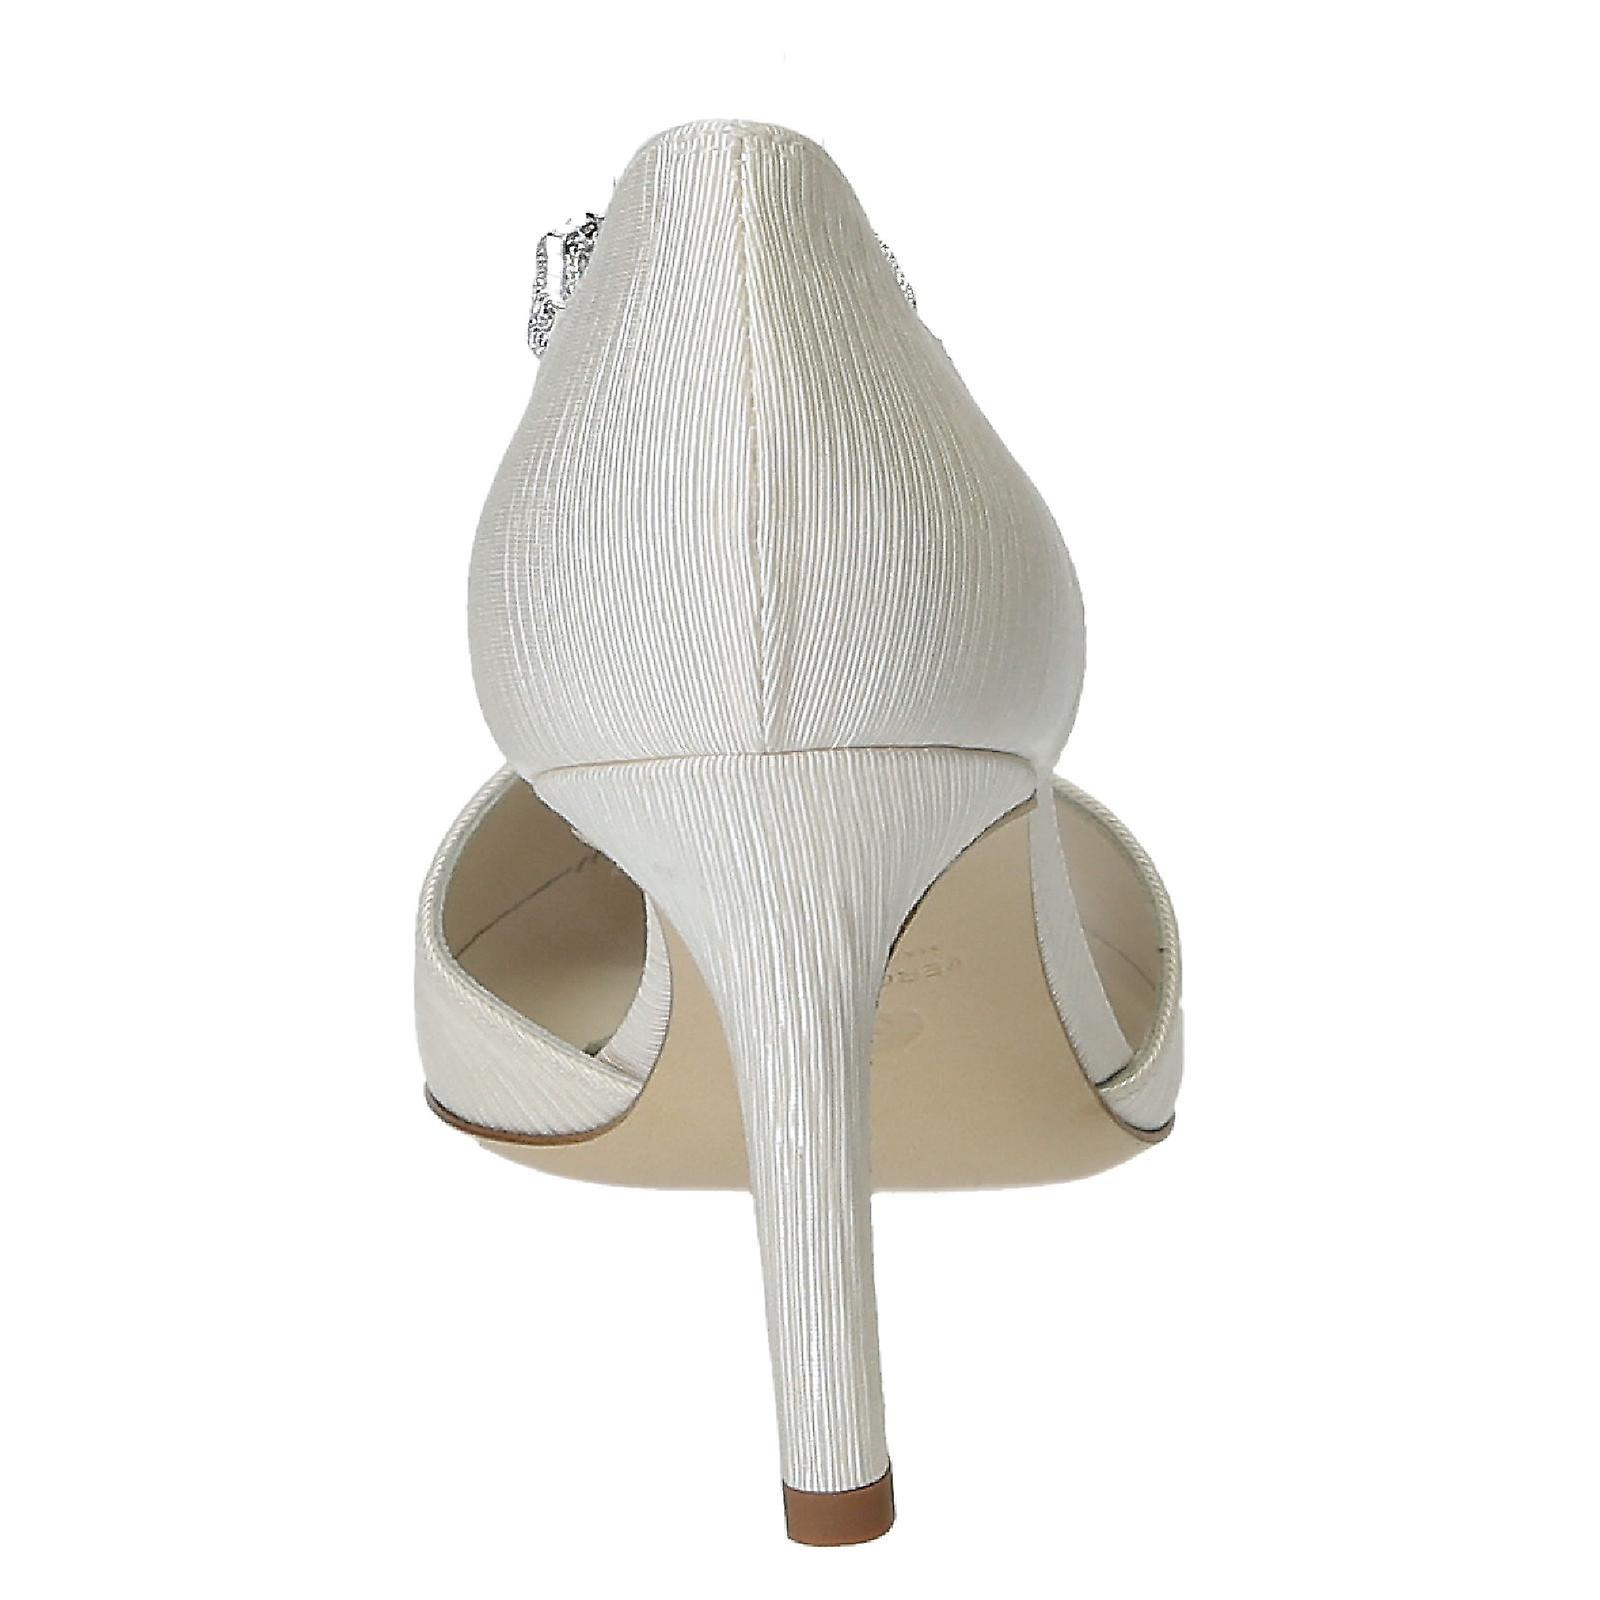 Italian wedding Chaussure s for bride in in bride ivory satin c43f86